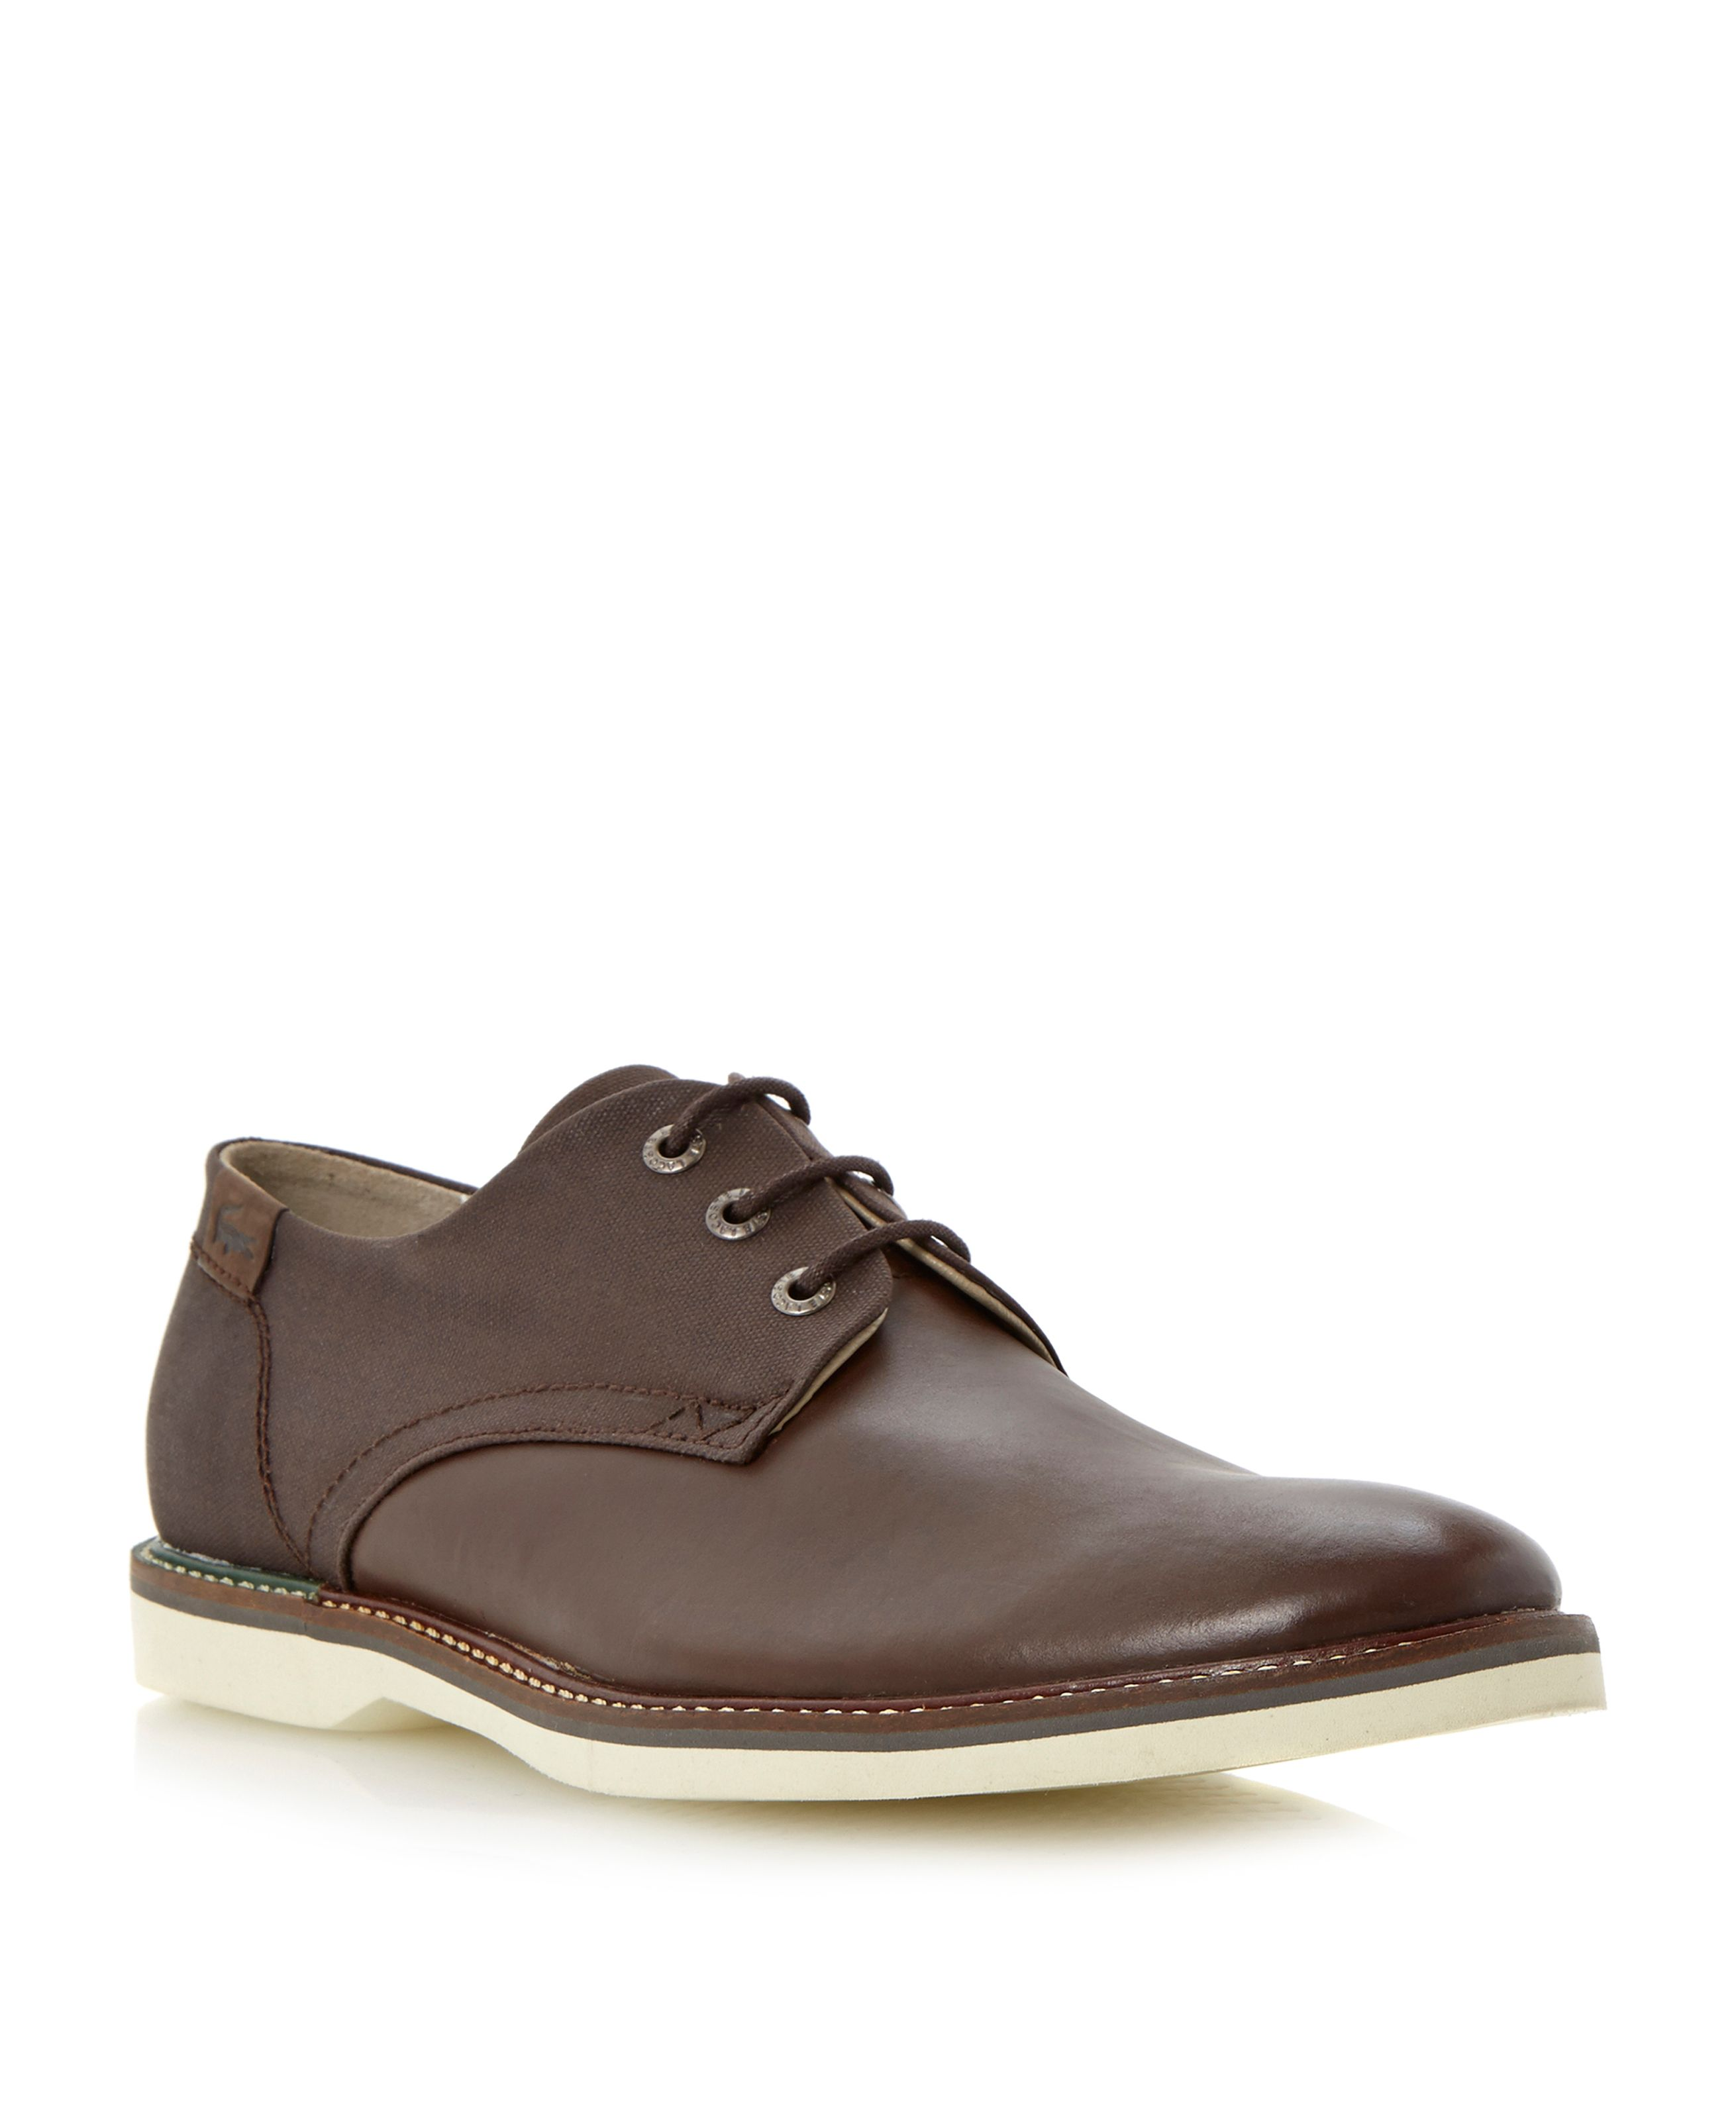 Sherbrooke lace up two tone gibson shoes